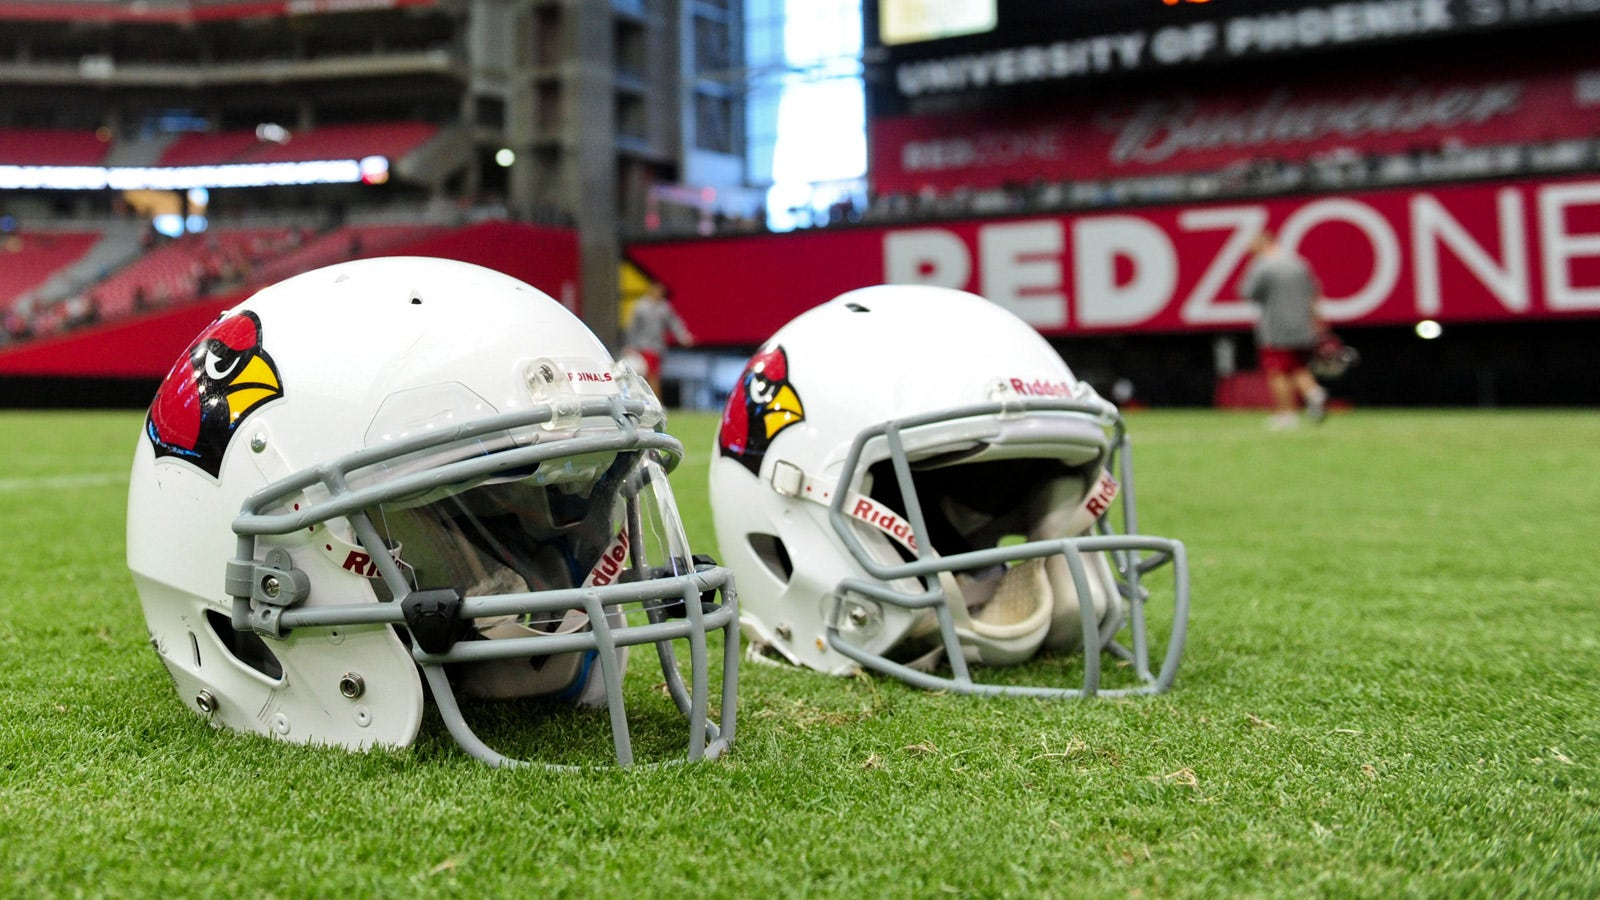 Cardinals Single Game Tickets Go On Sale This Week